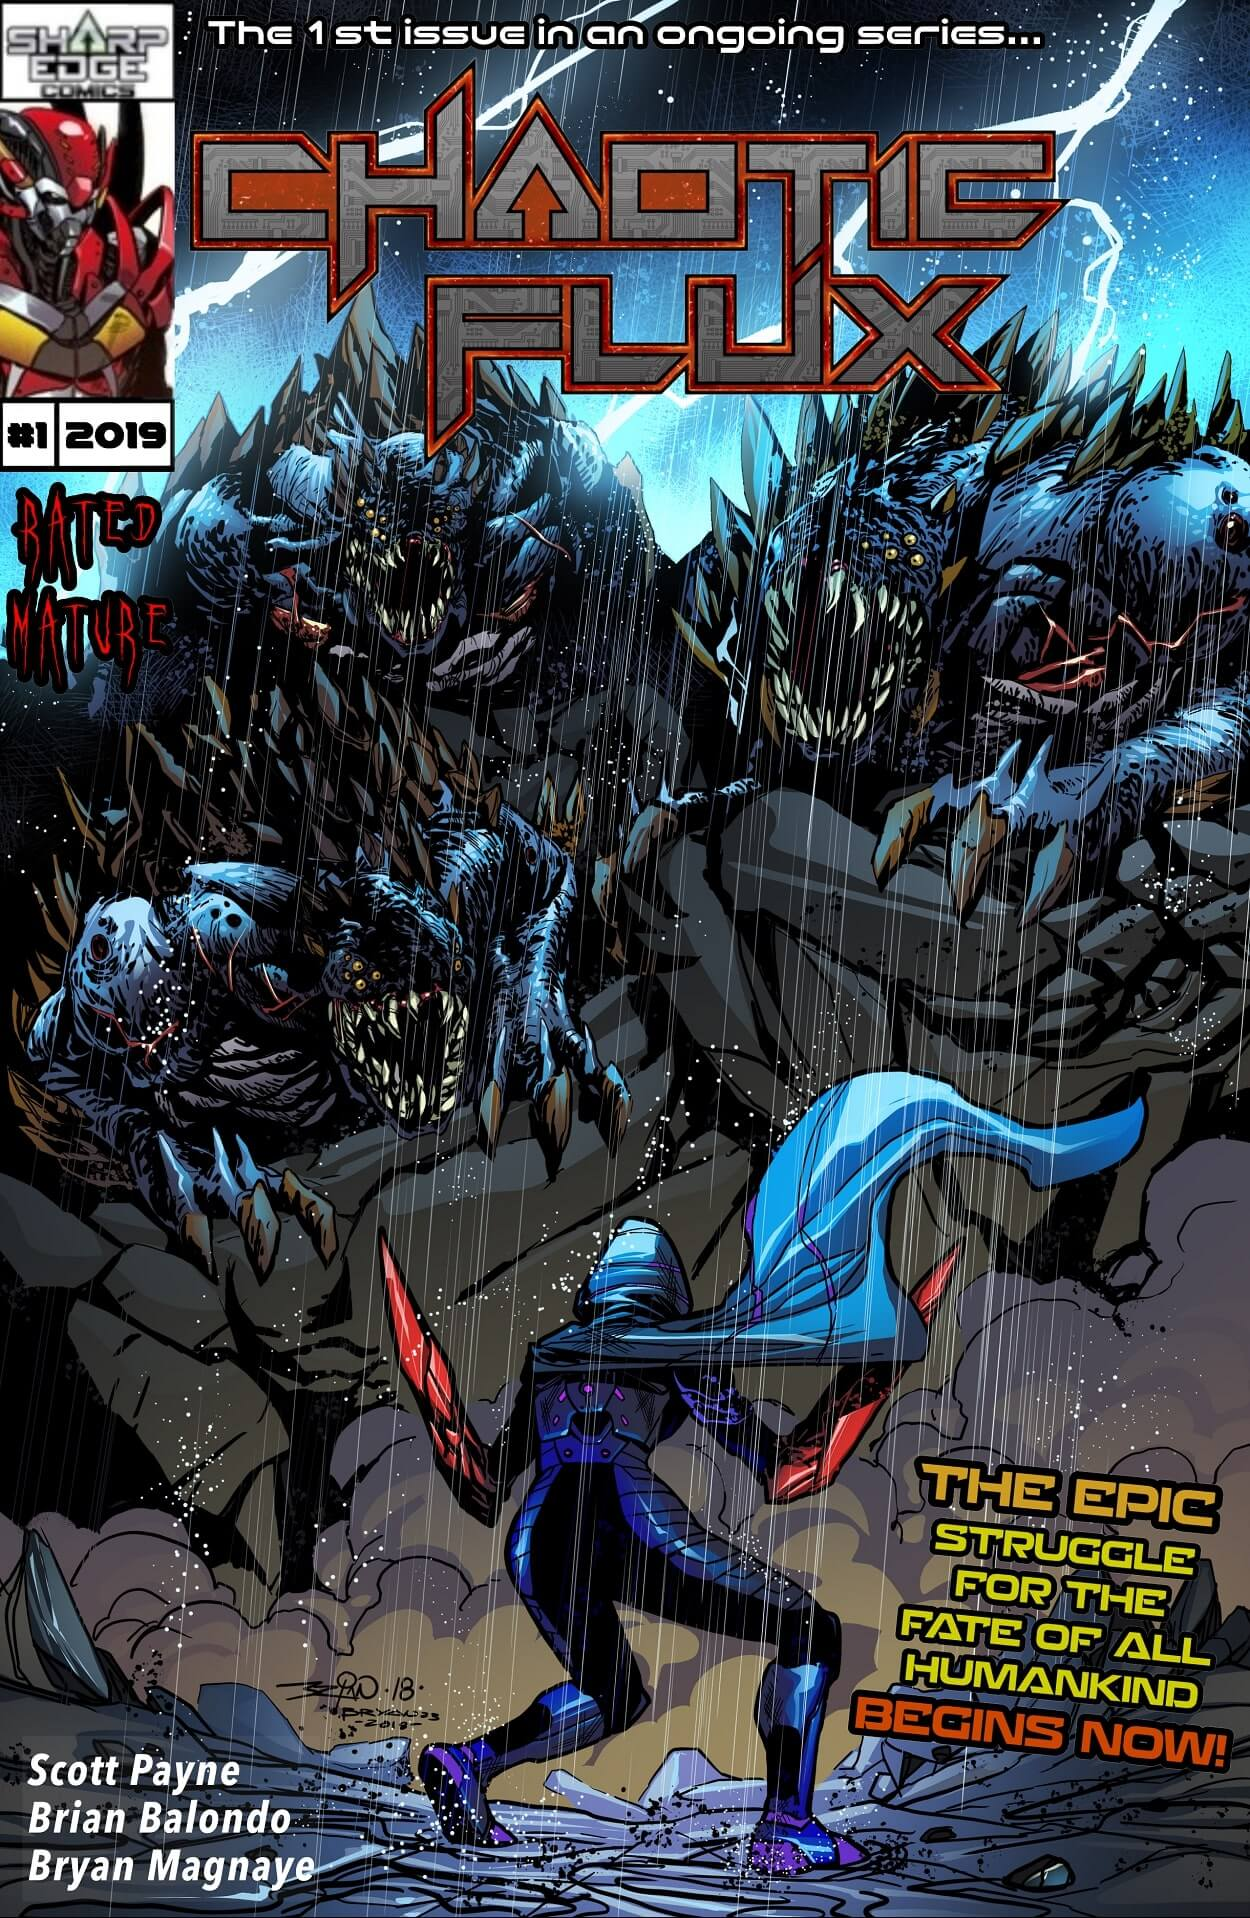 Chaotic Flux  issue 1: Aliens vs Monsters part 1